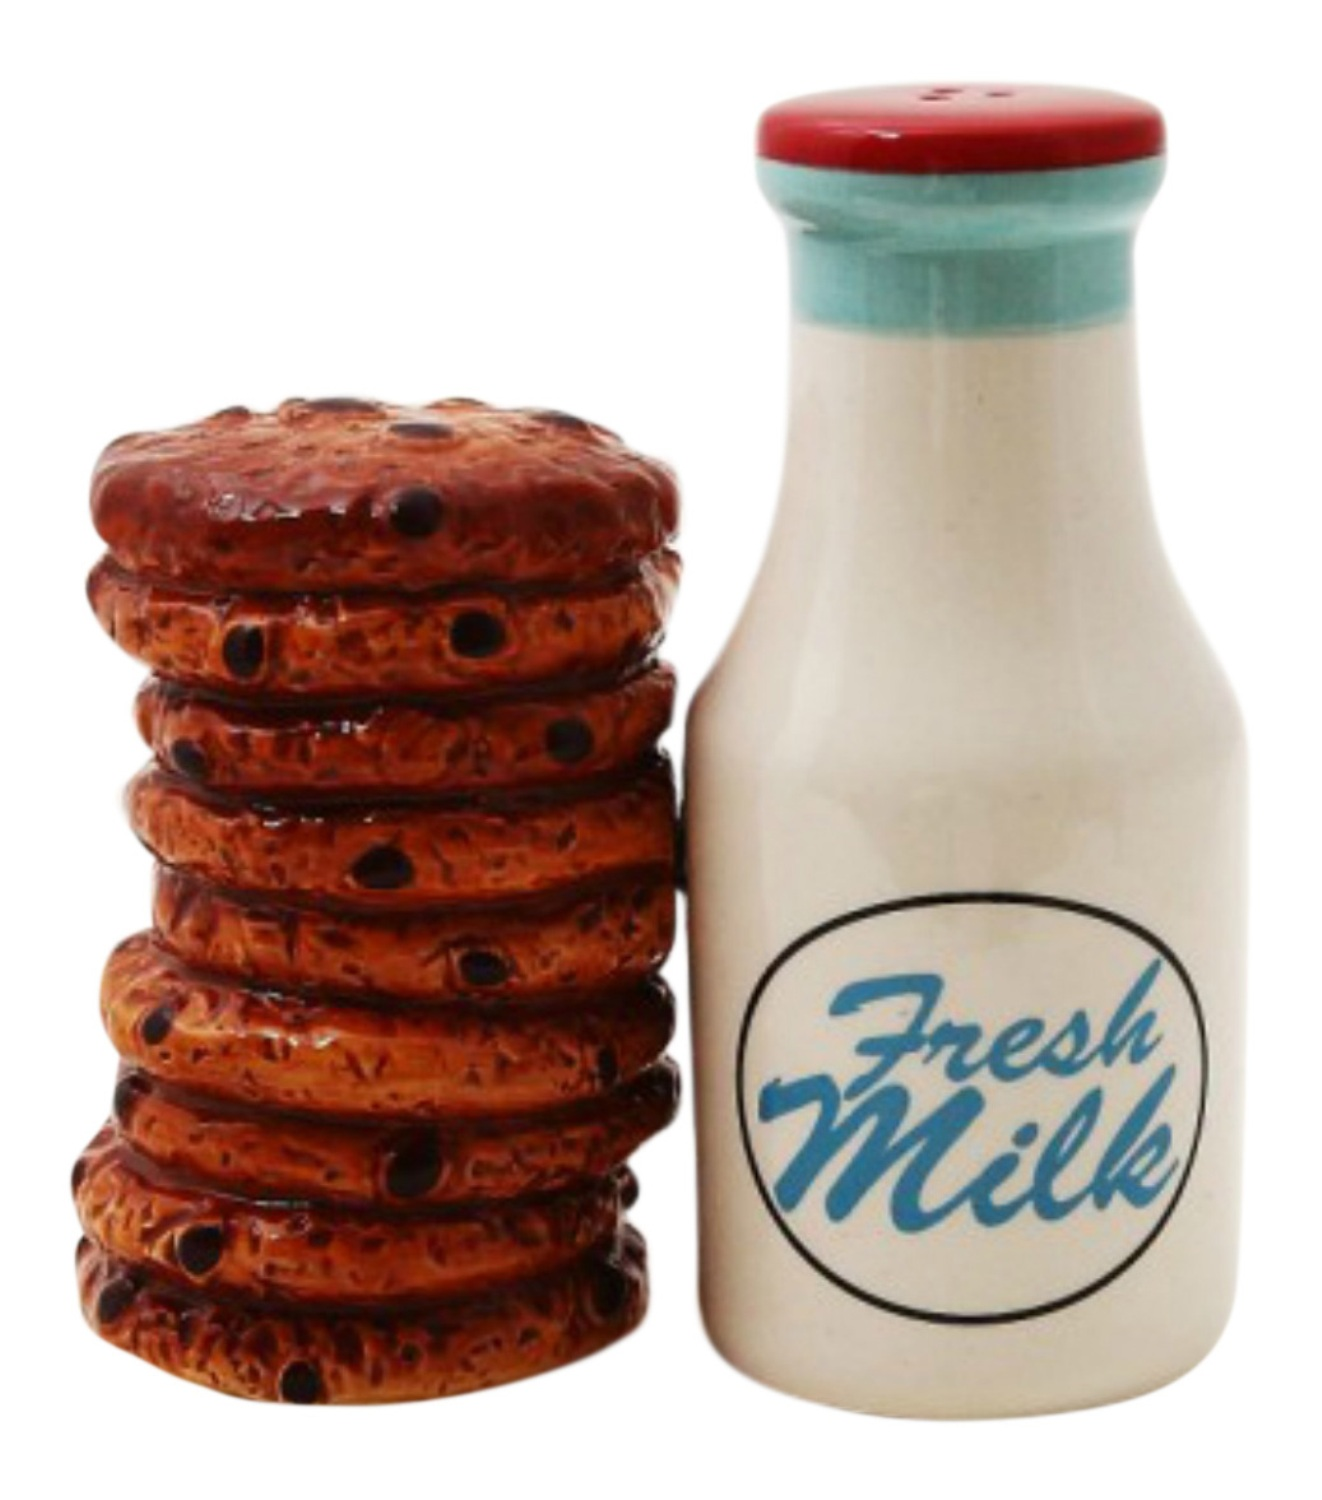 Milk and Cookies Salt and Pepper Shakers Set by Pacific Trading